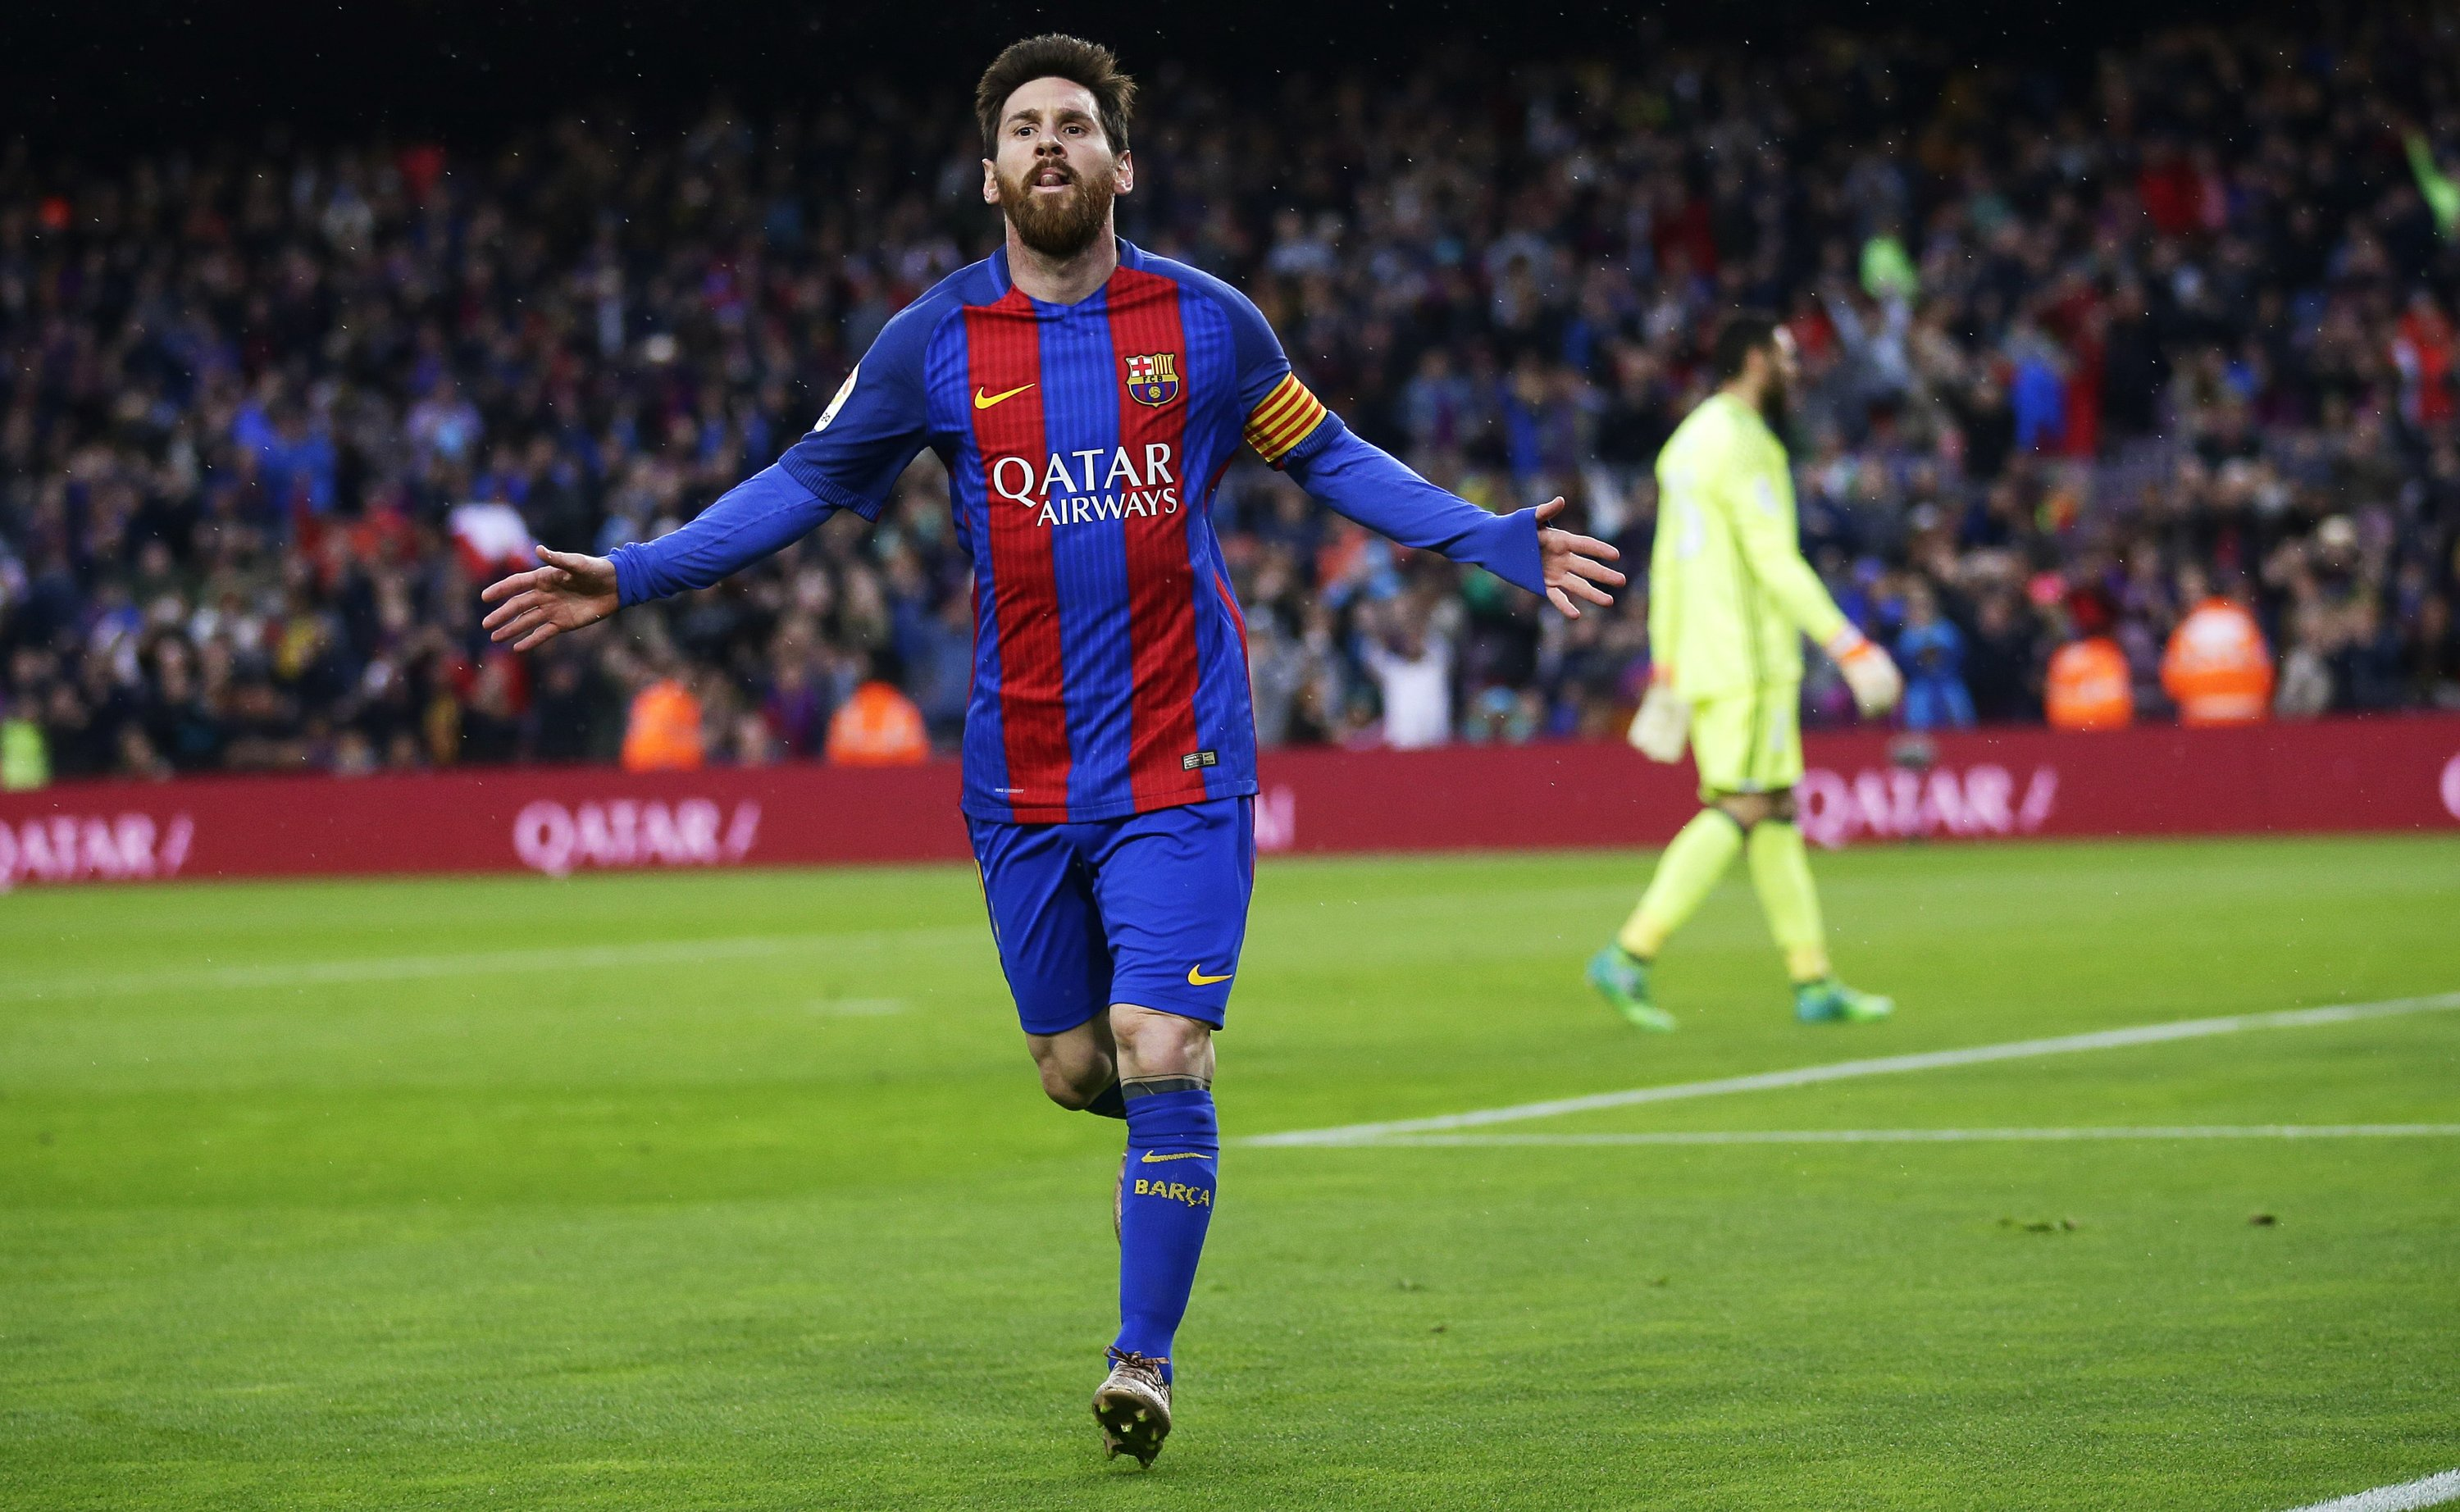 new product 0447d 2df39 Messi leads Barcelona to 7-1 victory; Real Madrid wins 6-2